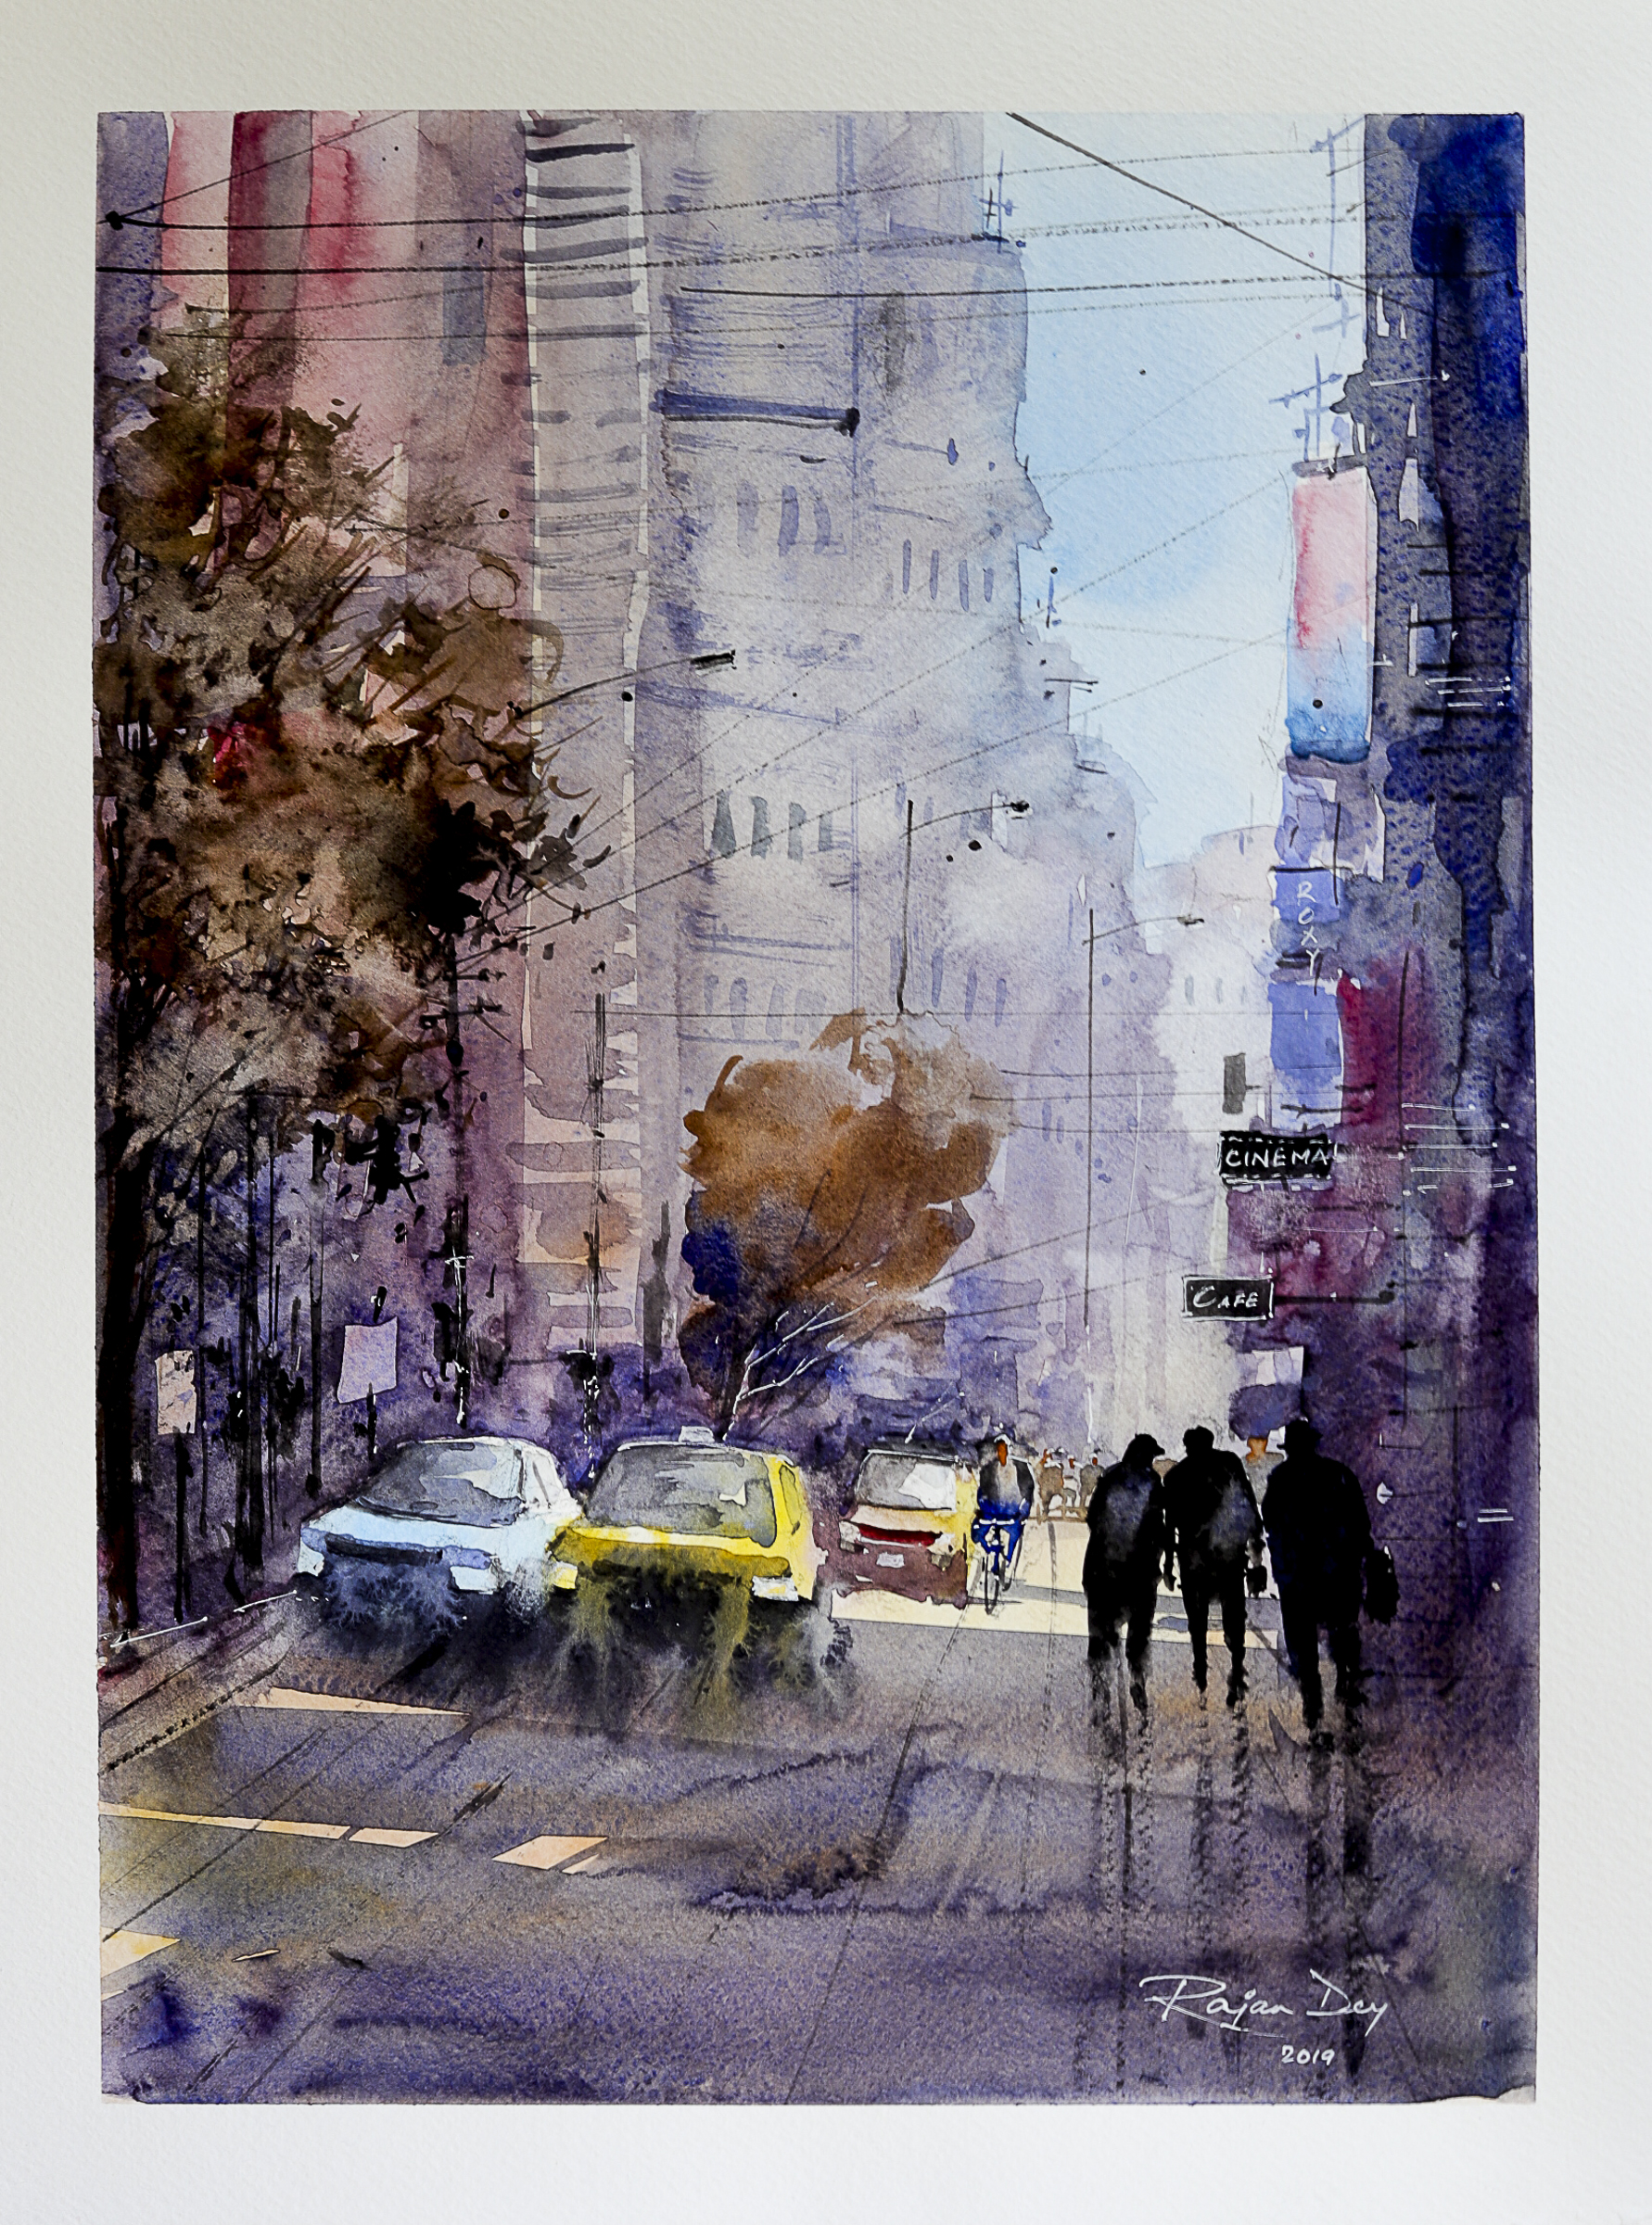 New York_11x15 Inch_RajanDey